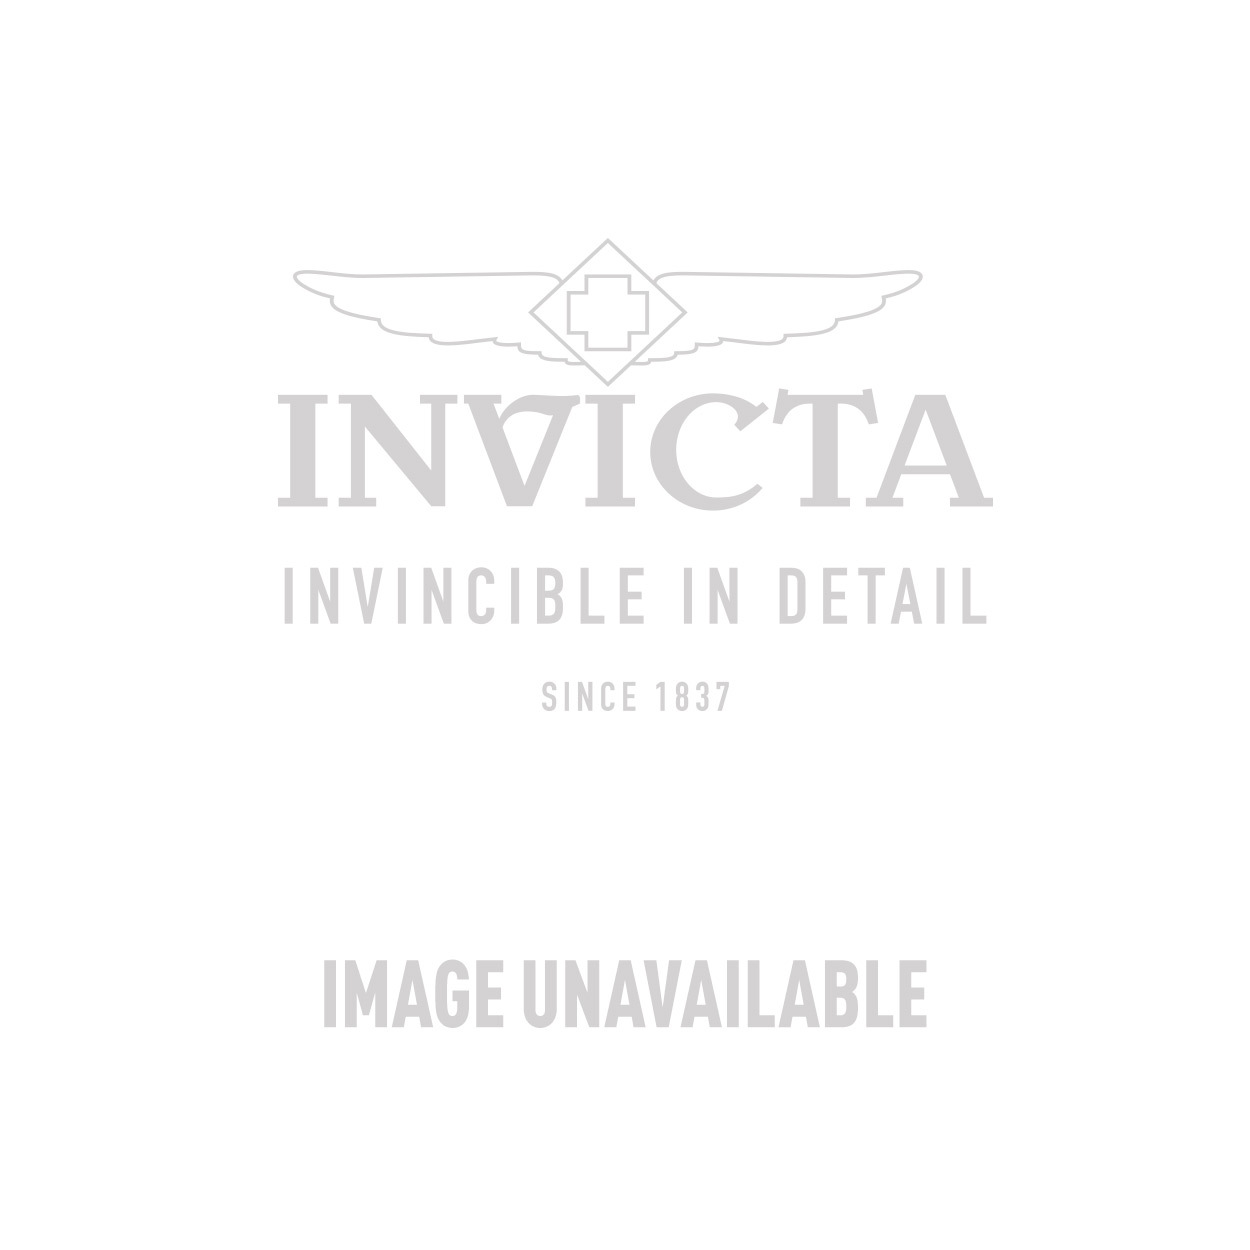 5303054e093 Invicta Pro Diver SCUBA Swiss Movement Quartz Watch - Stainless Steel case  Stainless Steel band - Model 21553